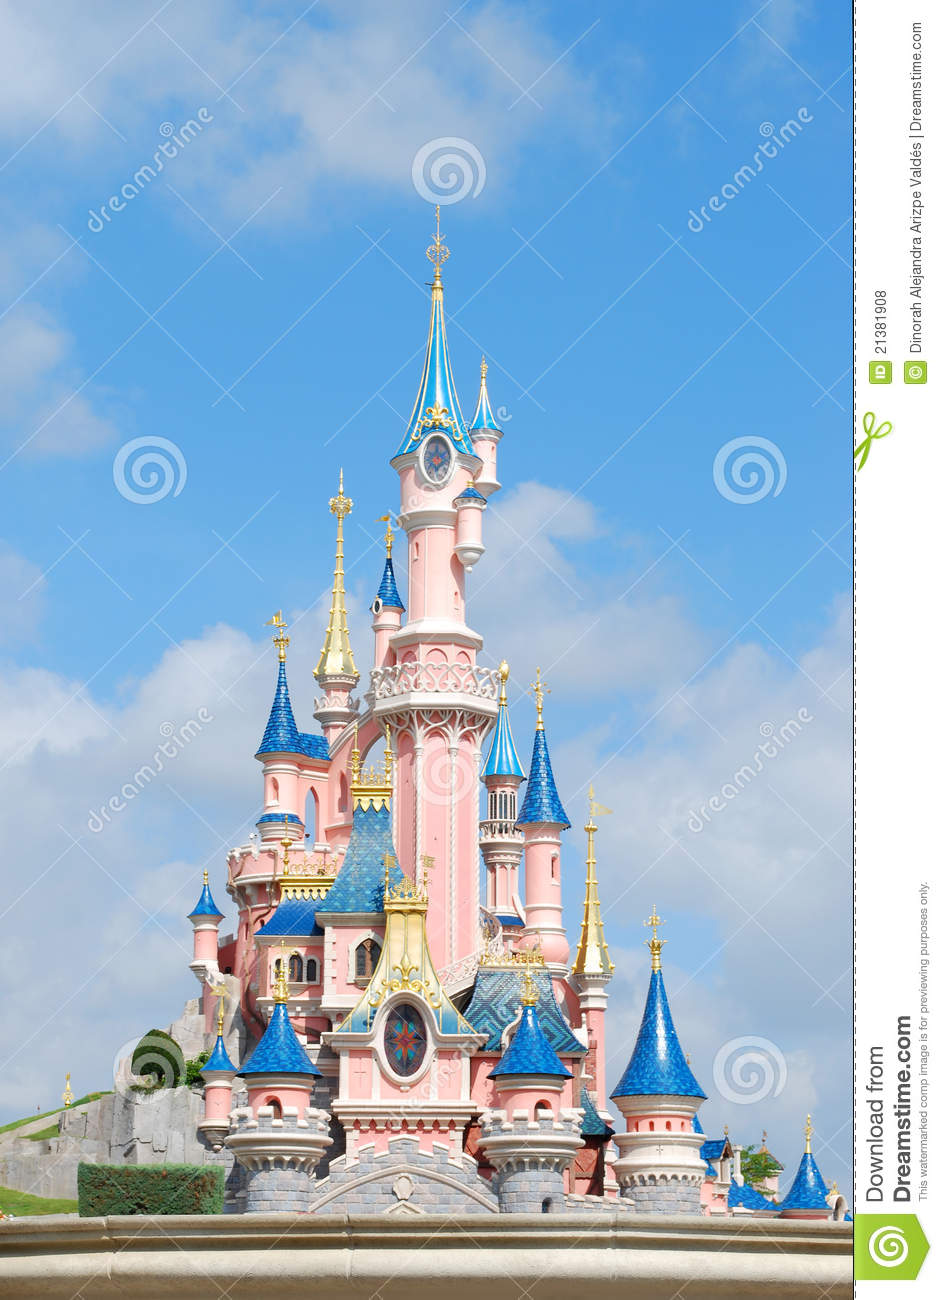 Eurodisney Castle Editorial Stock Photo - Image: 21381908